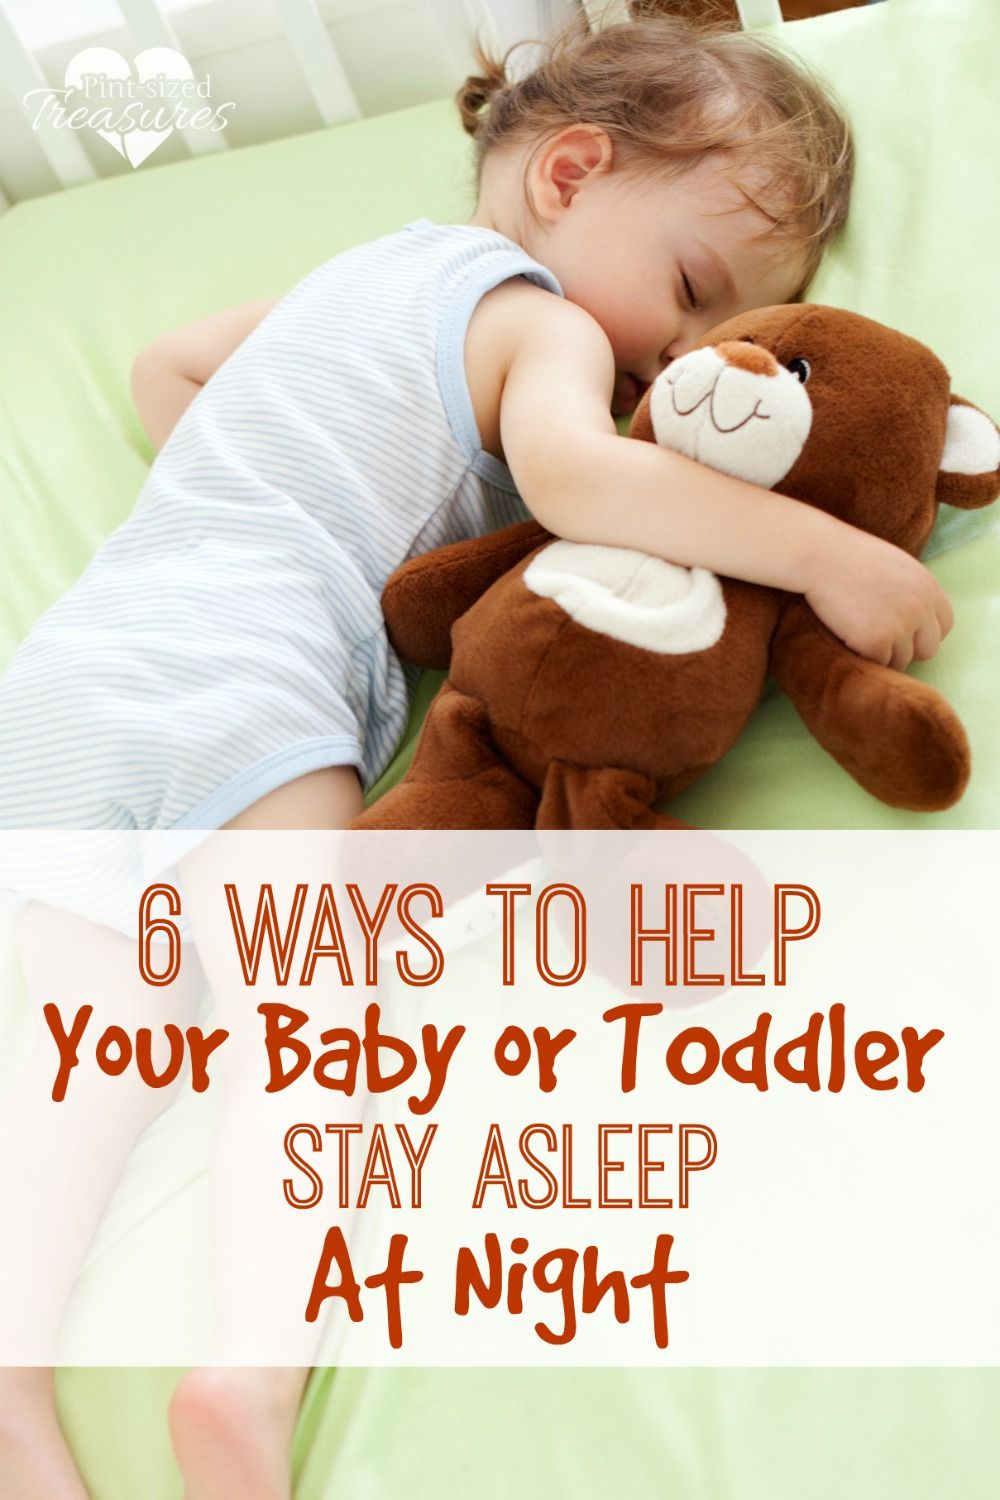 Find out what will help your baby sleep